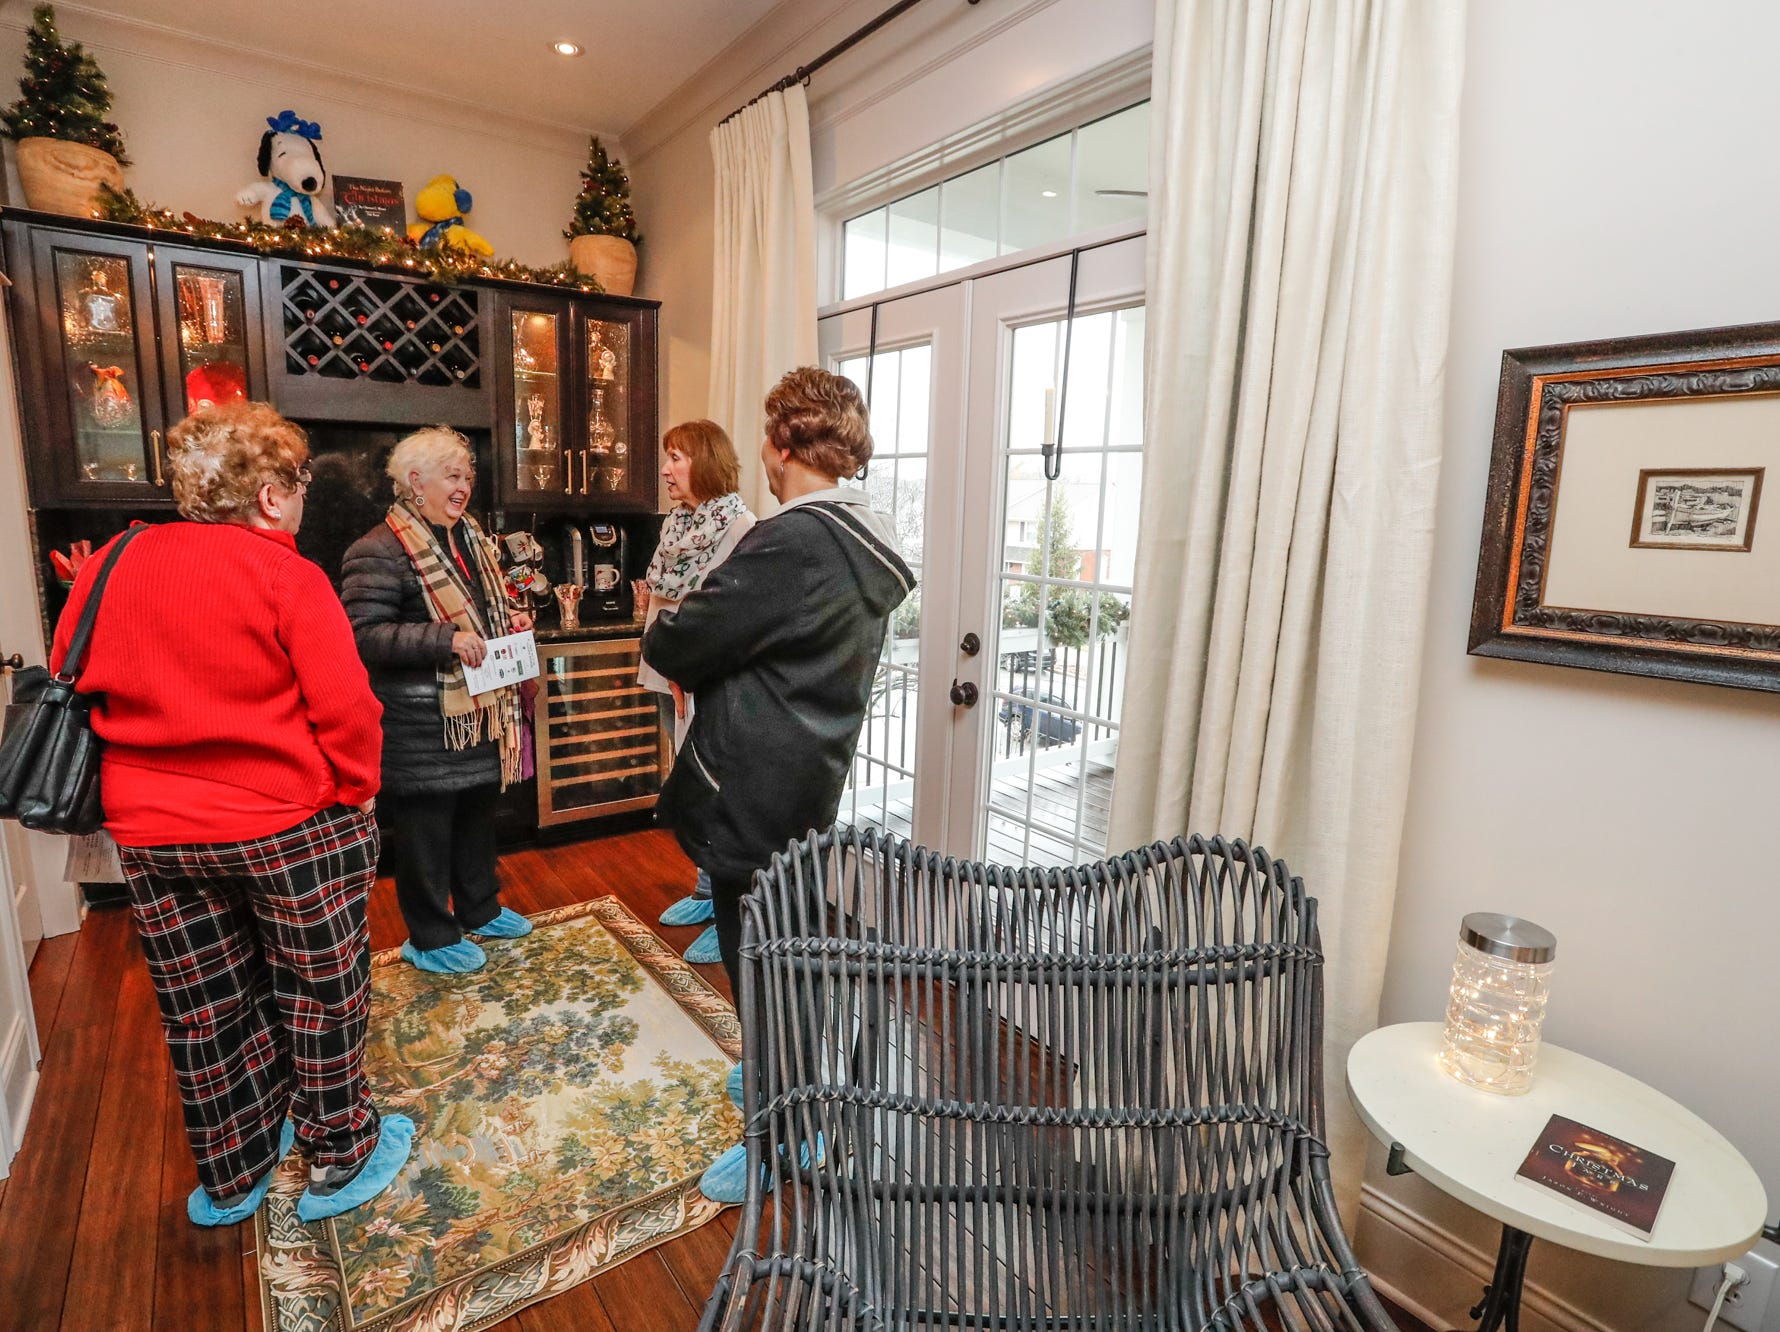 Guests tour the second floor of the contemporary plantation-style home belonging to Lezlie and Terry Heath with grand front porches and lots of space for entertaining, during the Carmel Clay Historical Society Holiday Home Tour in Carmel Ind. on Saturday, Dec.1, 2018. The couples son, Craig Heath, helped to design the home.